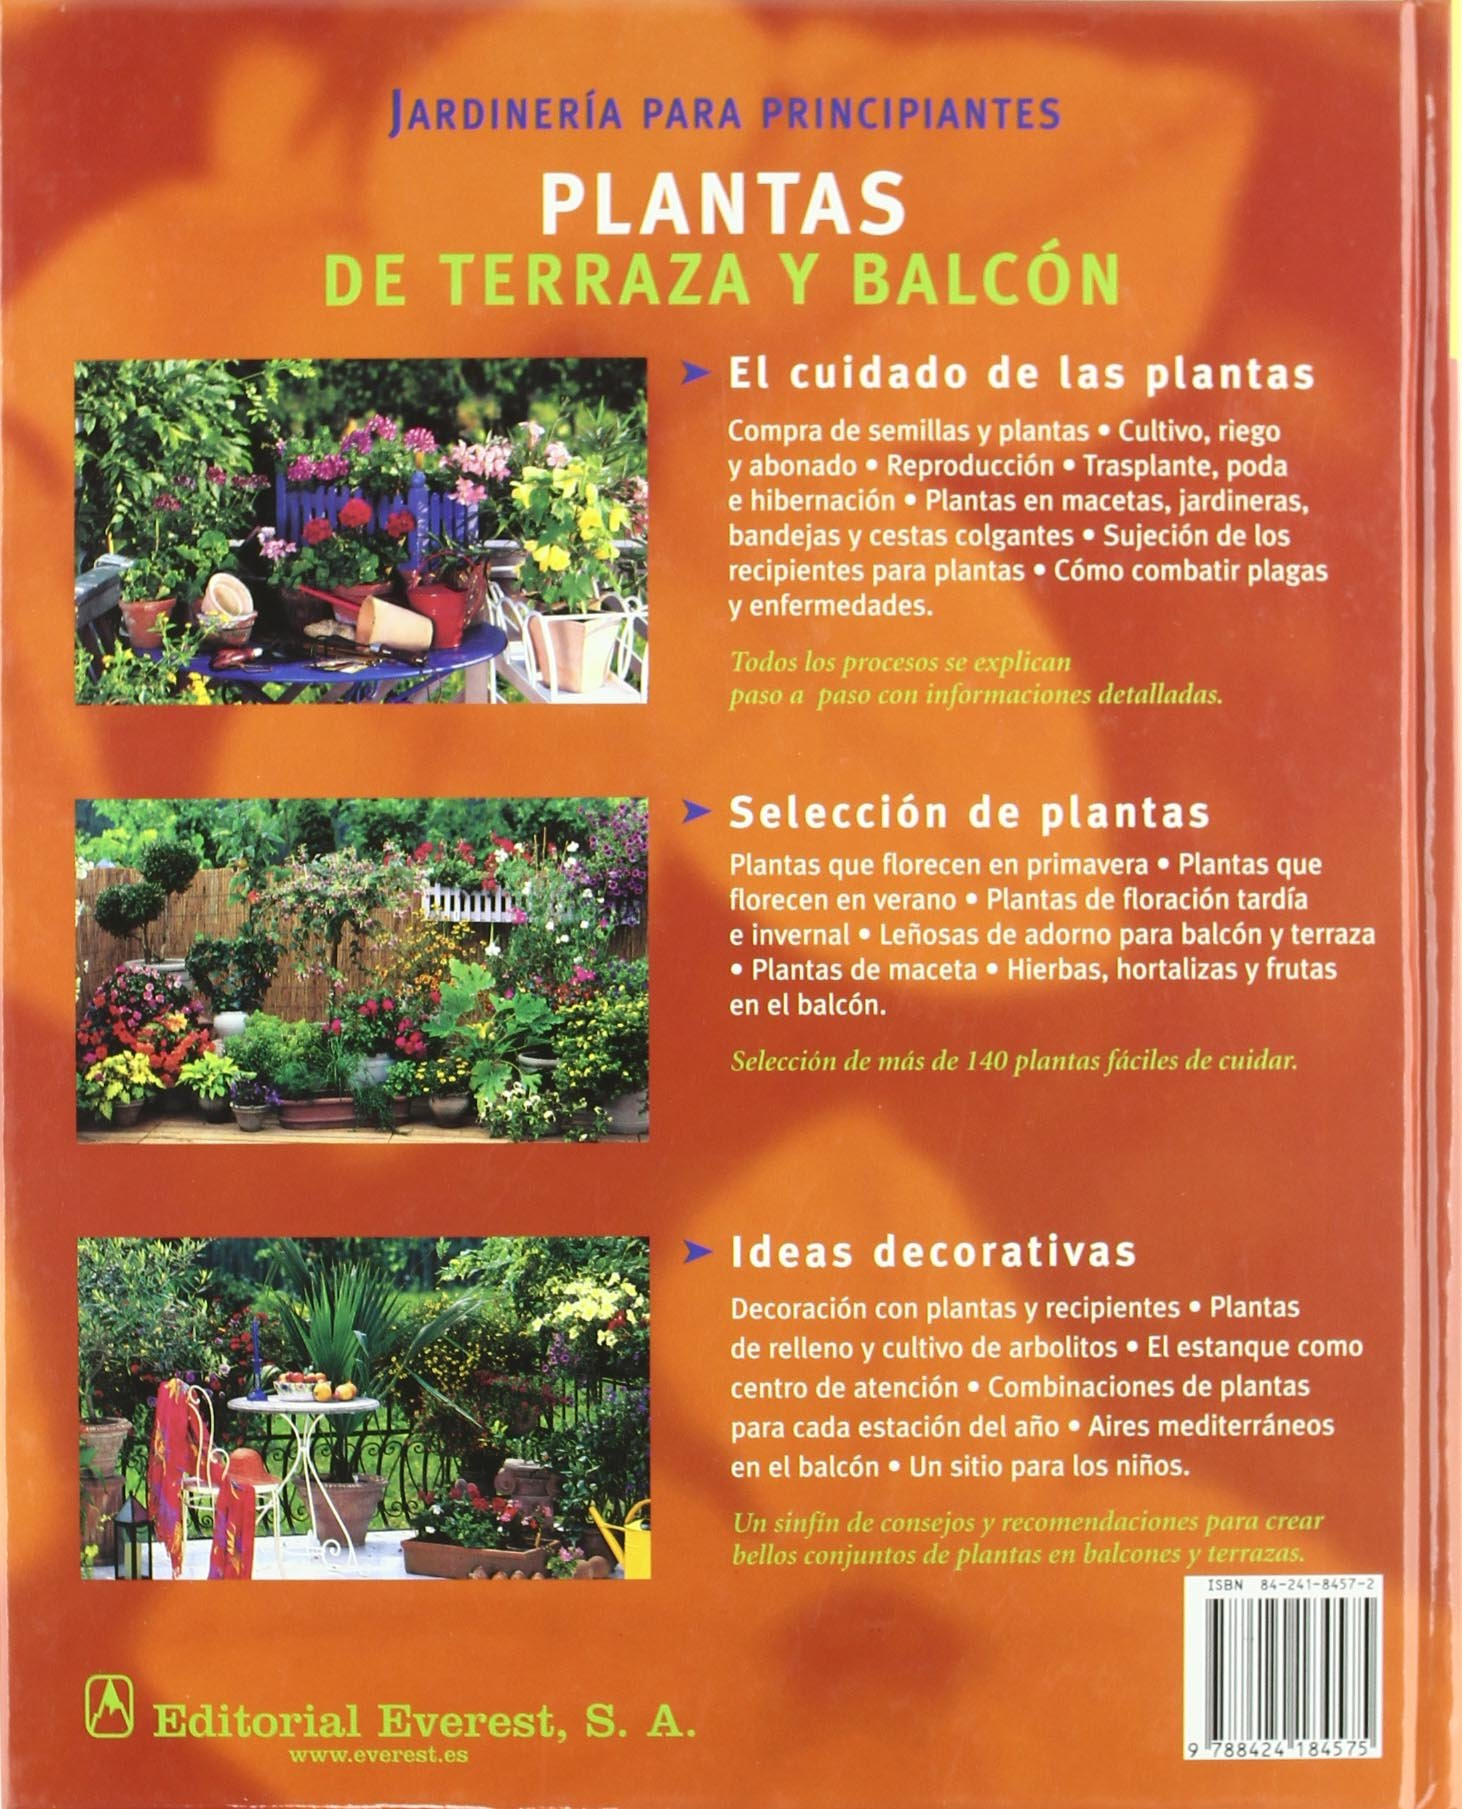 Plantas de Terraza y Balcon (Spanish Edition): Joachim Mayer, Friedrich Strauss: 9788424184575: Amazon.com: Books